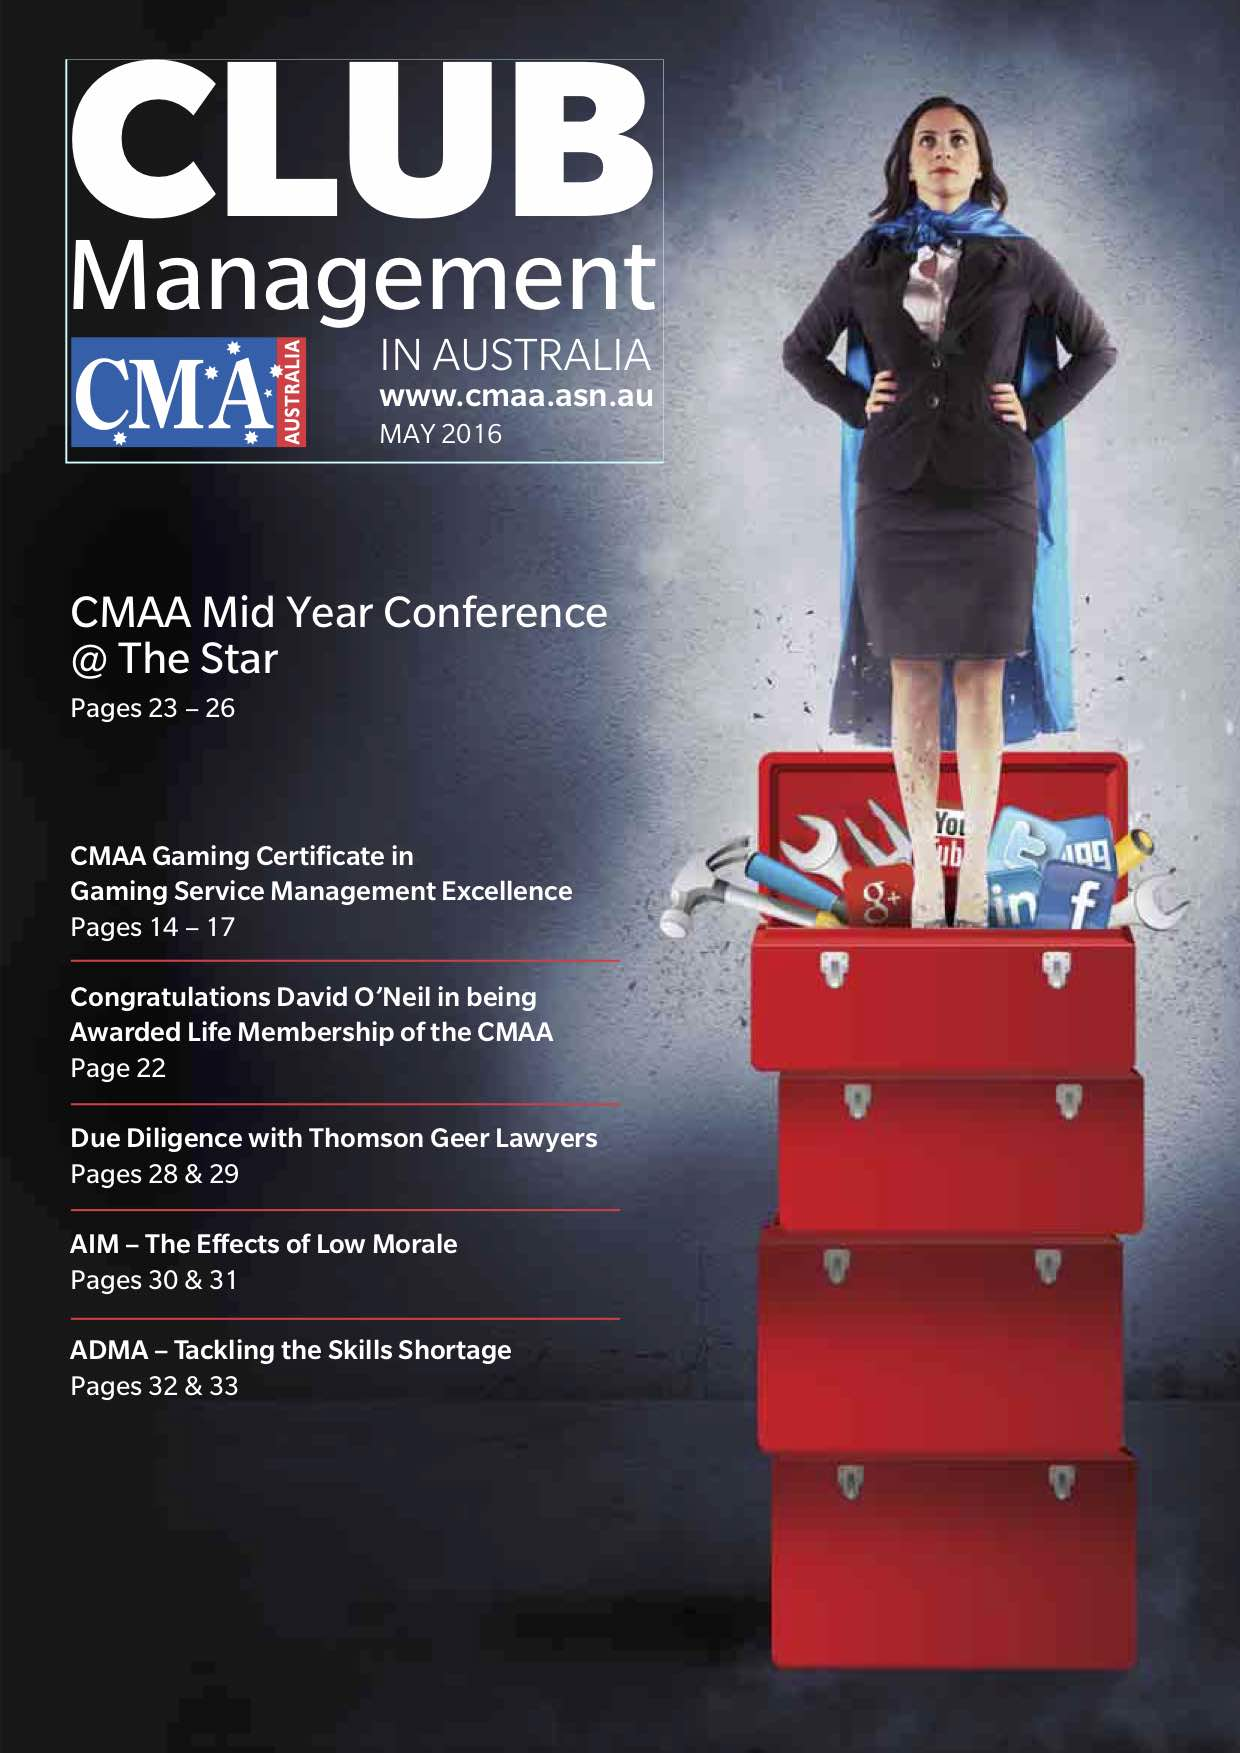 How to Source Images Legally for ADMA in CMA Magazine May 2016 Cover